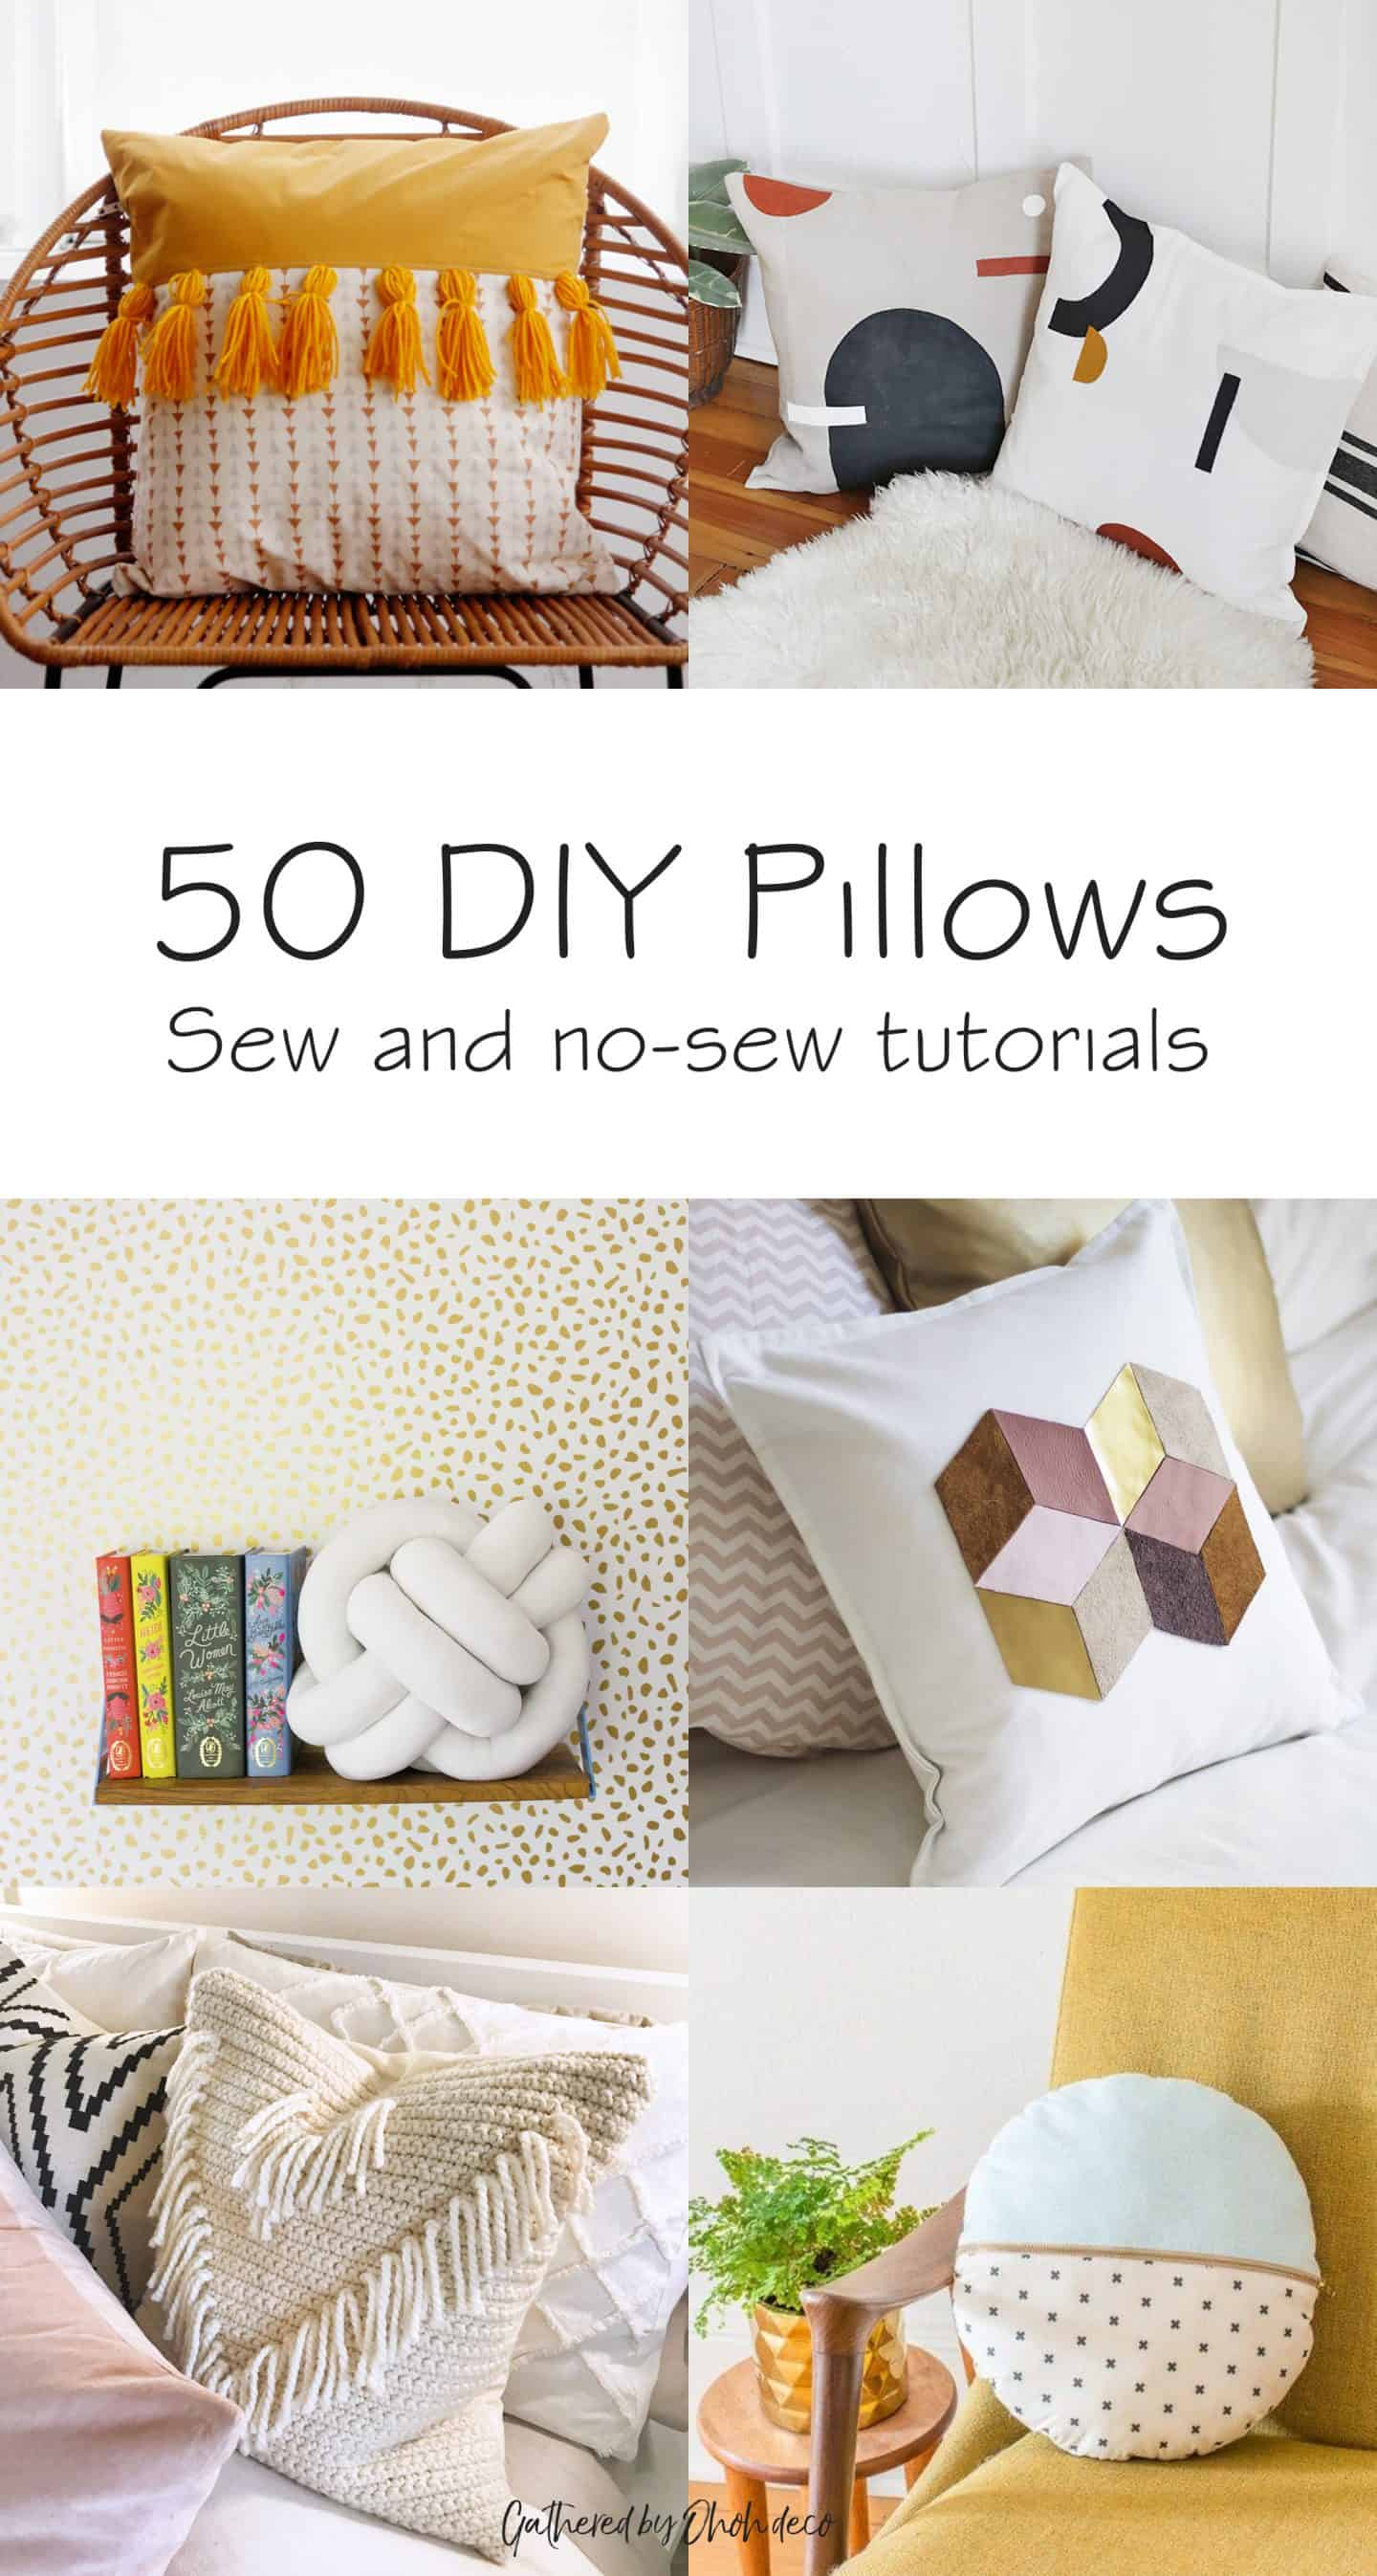 50 DIY pillows - sewing tutorial and no-sew